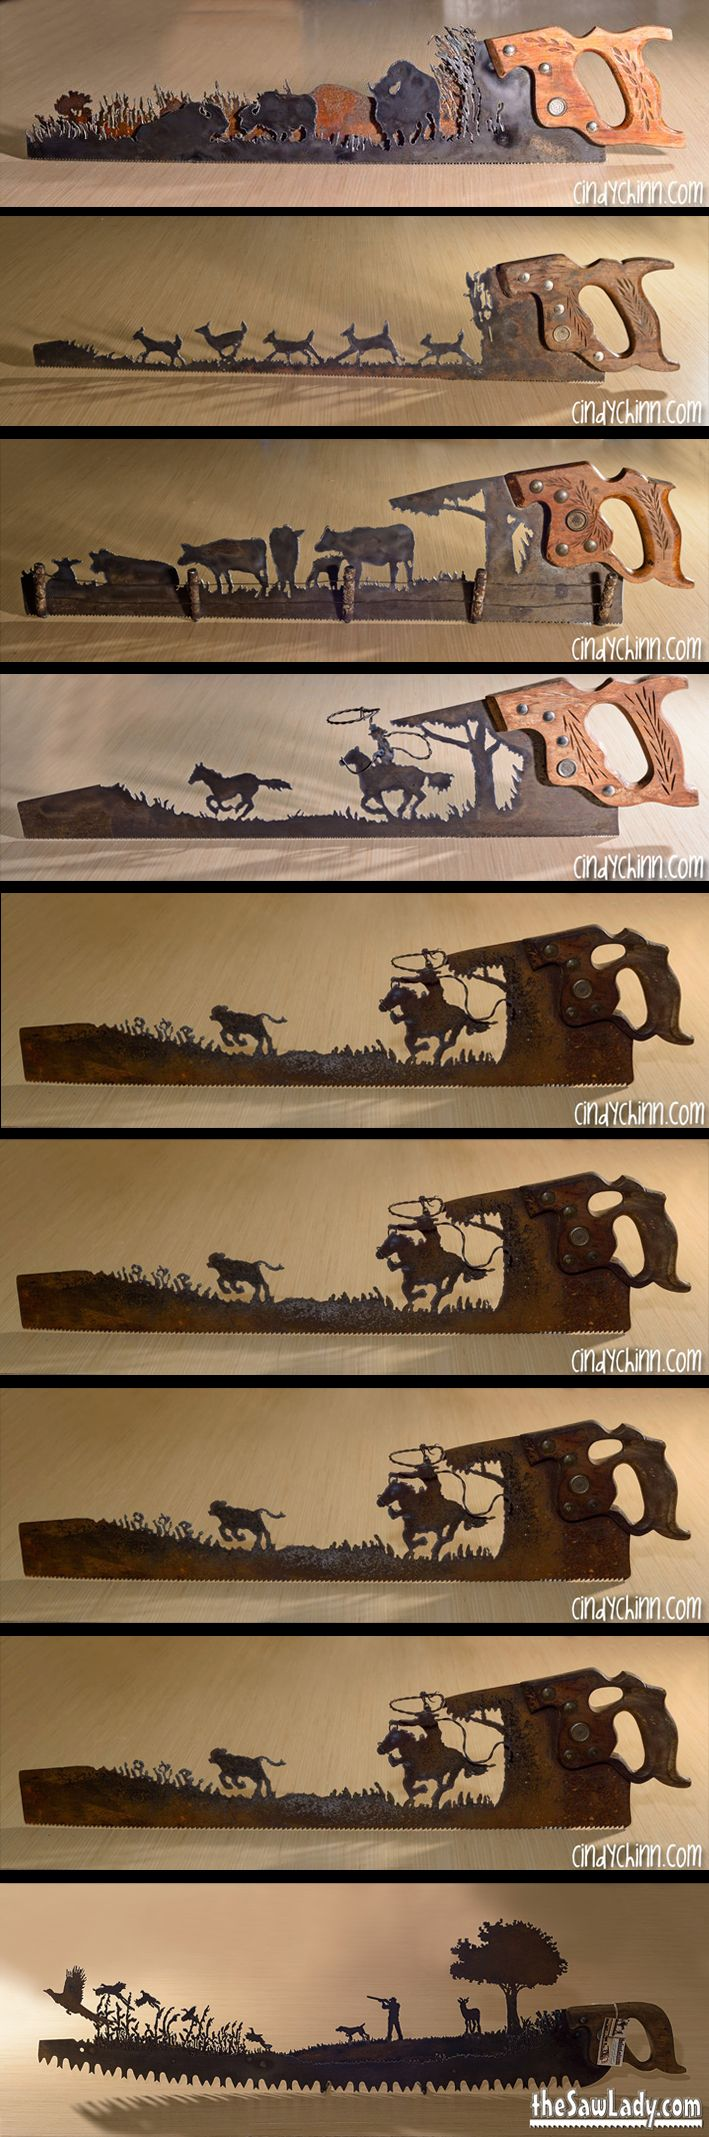 http://cindychinn.com/blog/plasma-hand-cut-saws-by-cindy-chinn/